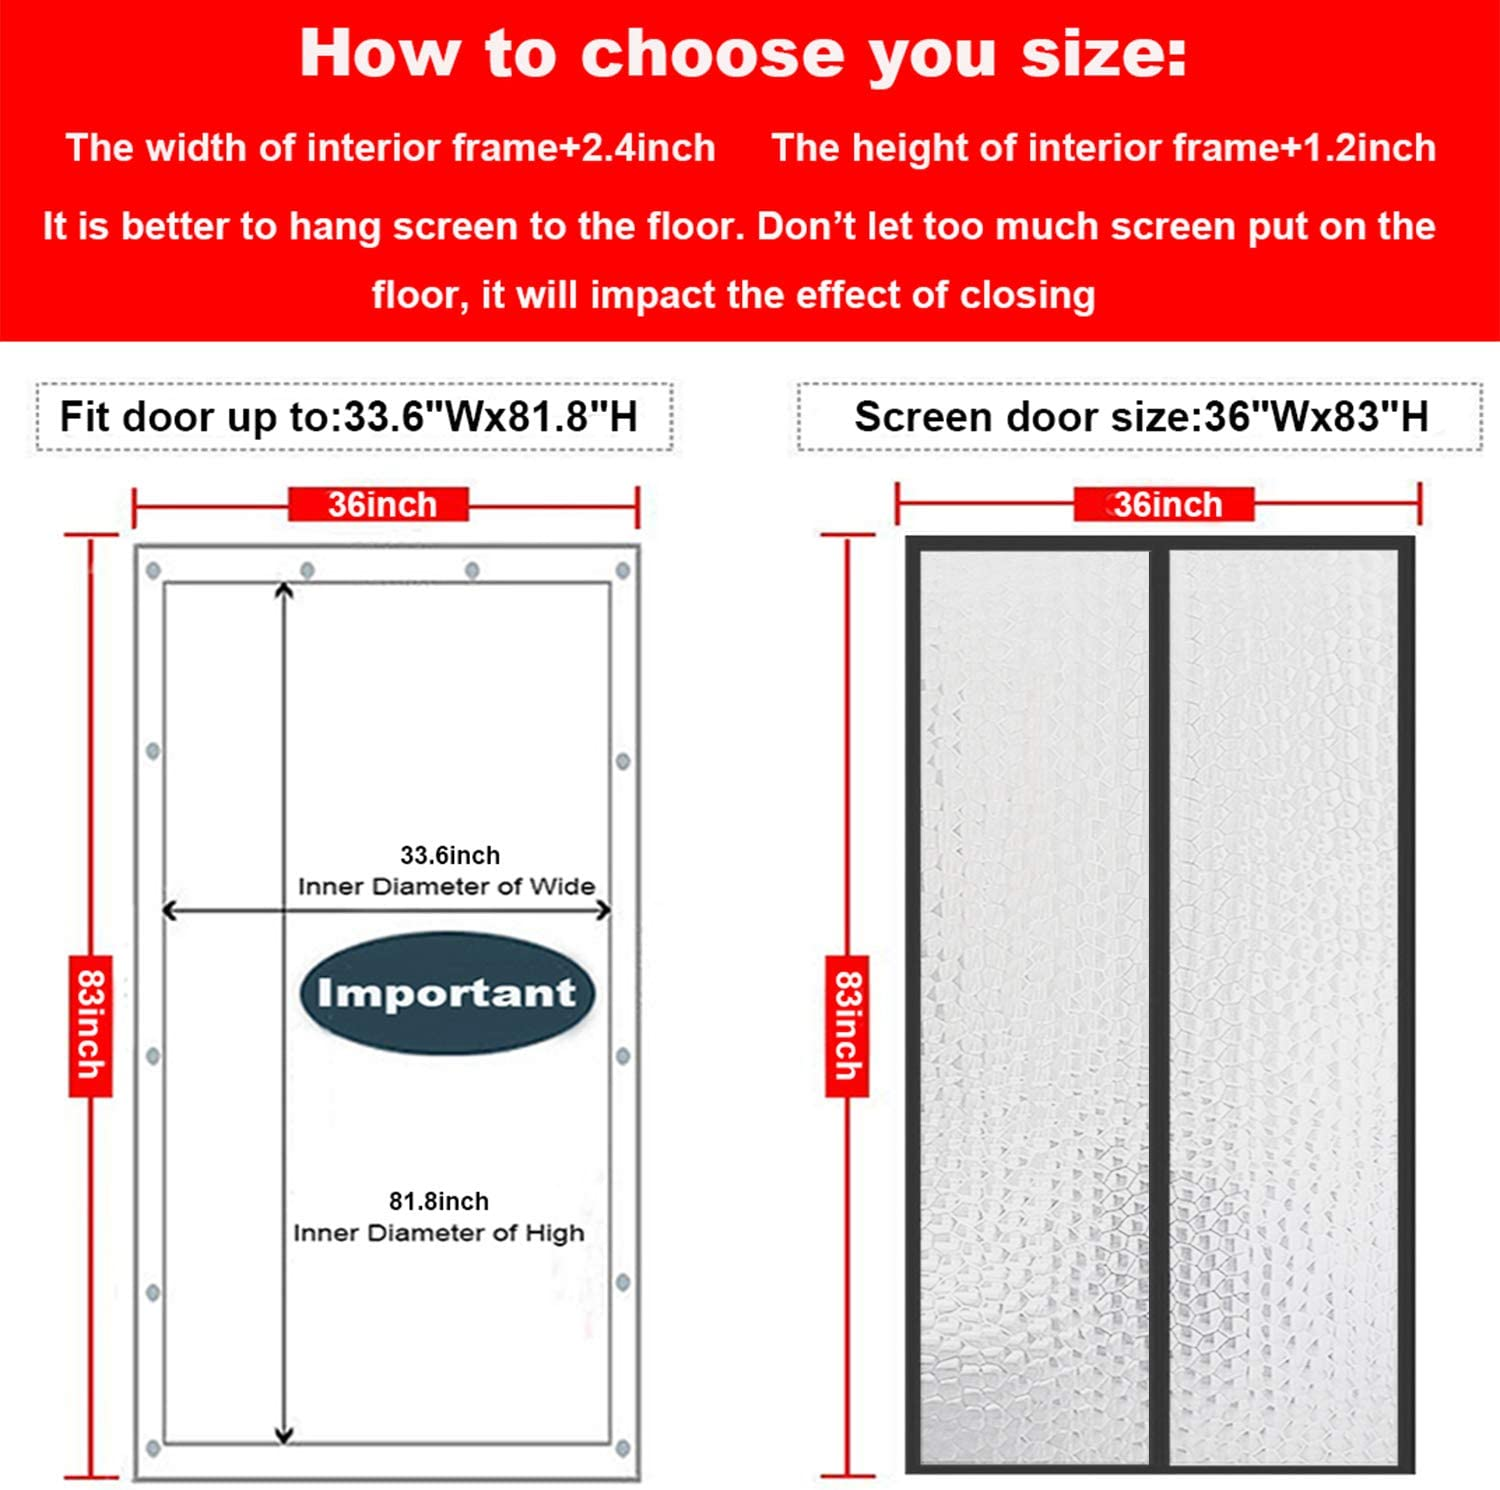 Magnetic Thermal Insulated Door Curtain 38x82 Magnet Patio Door Cover Auto Closer Fits Doors Up to 36x81 to Keep Warm in Winter Cool in Summer for Air Conditioner Heater Room Home Kitchen